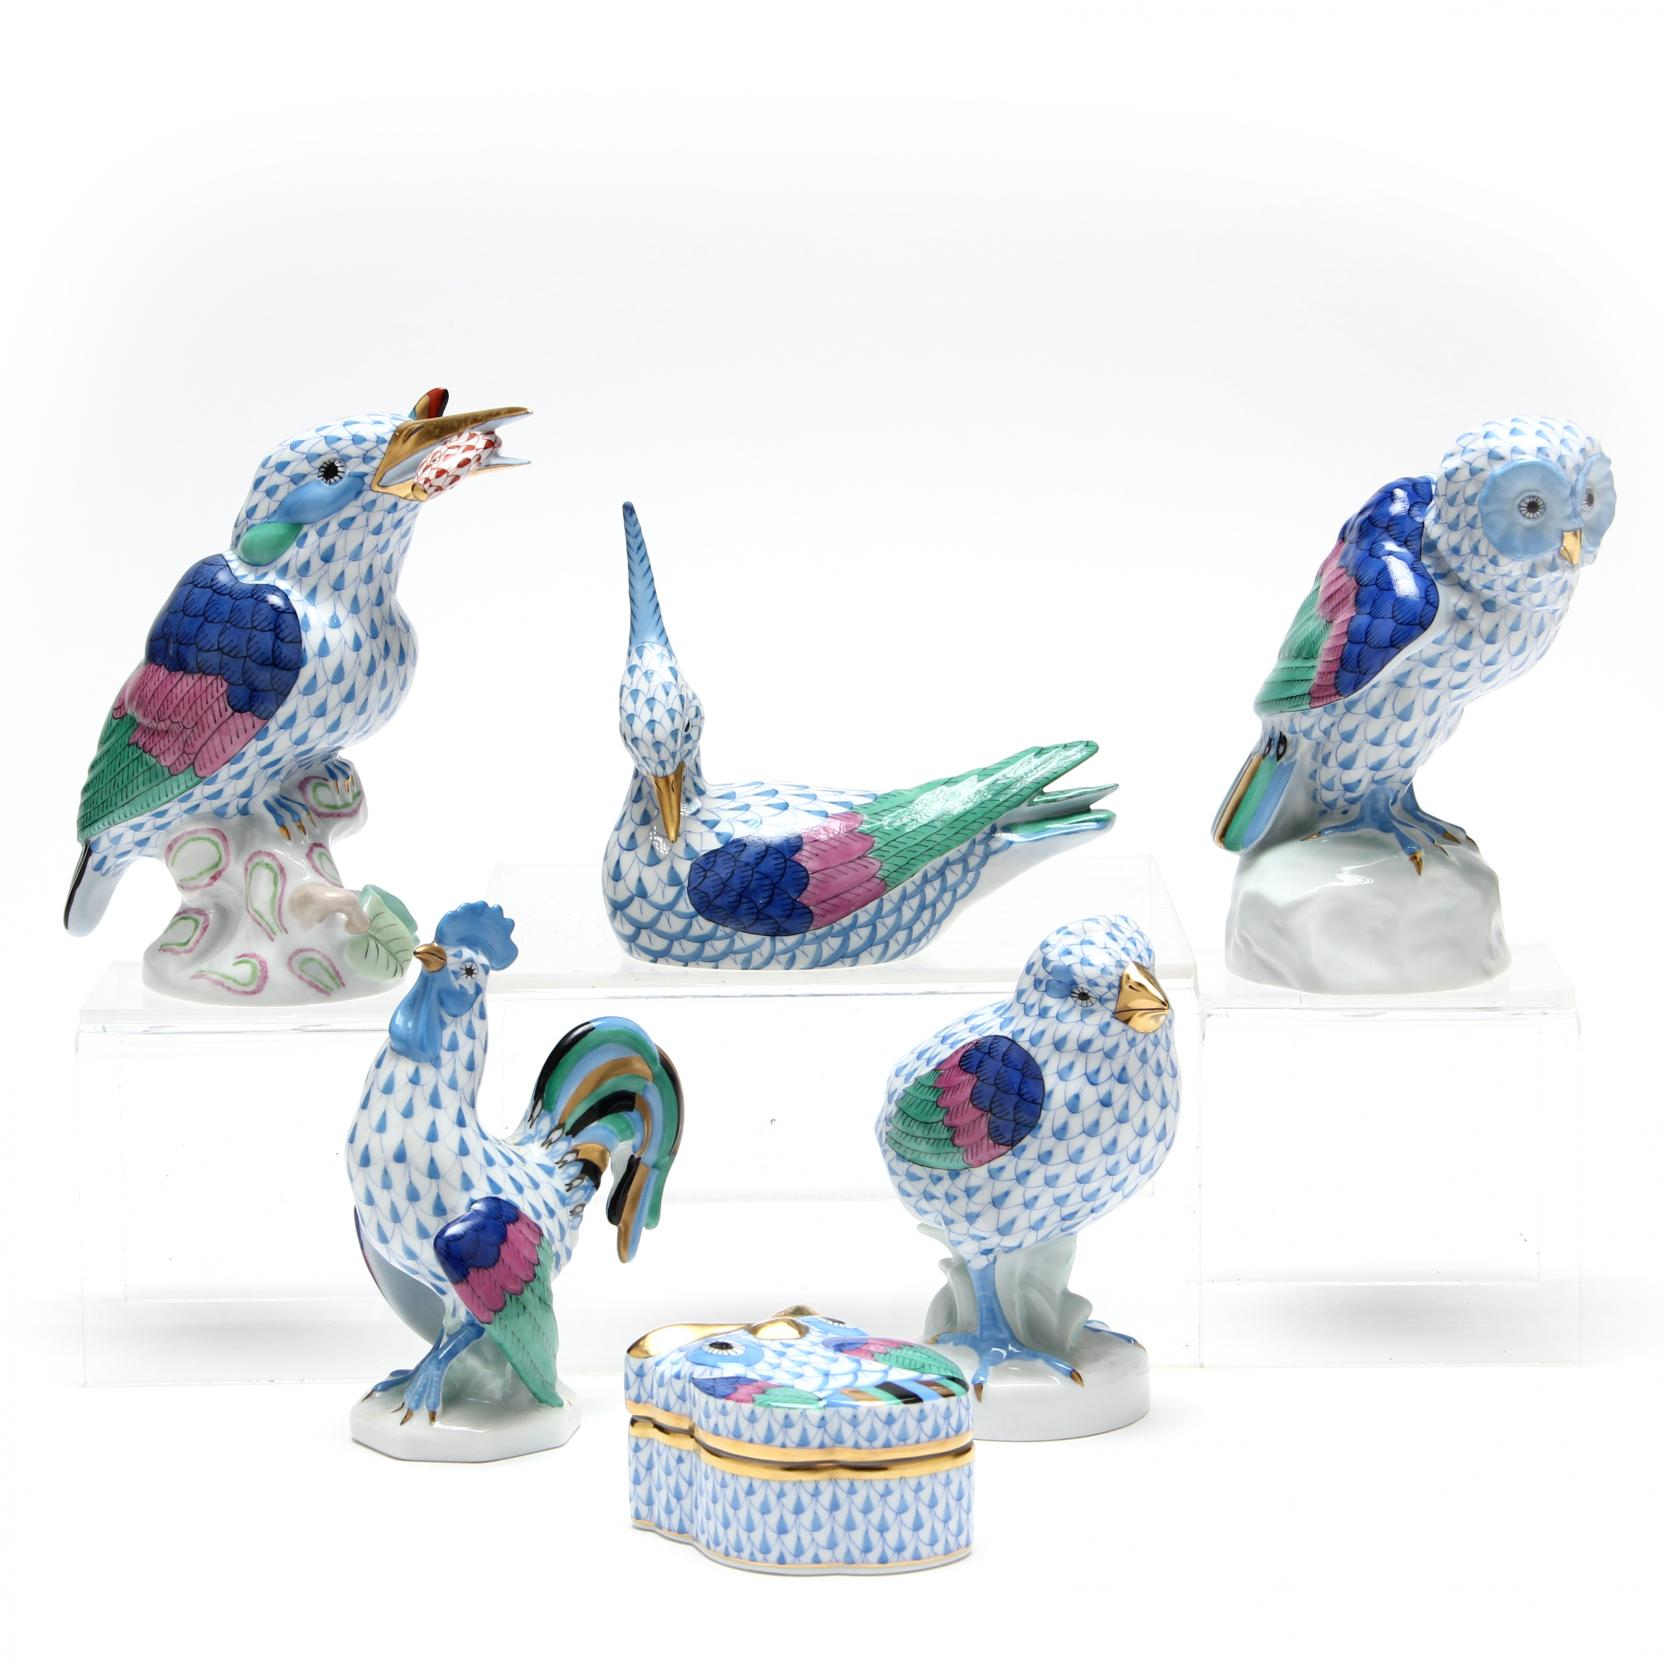 a-group-of-six-herend-bird-figurines-blue-fishnet